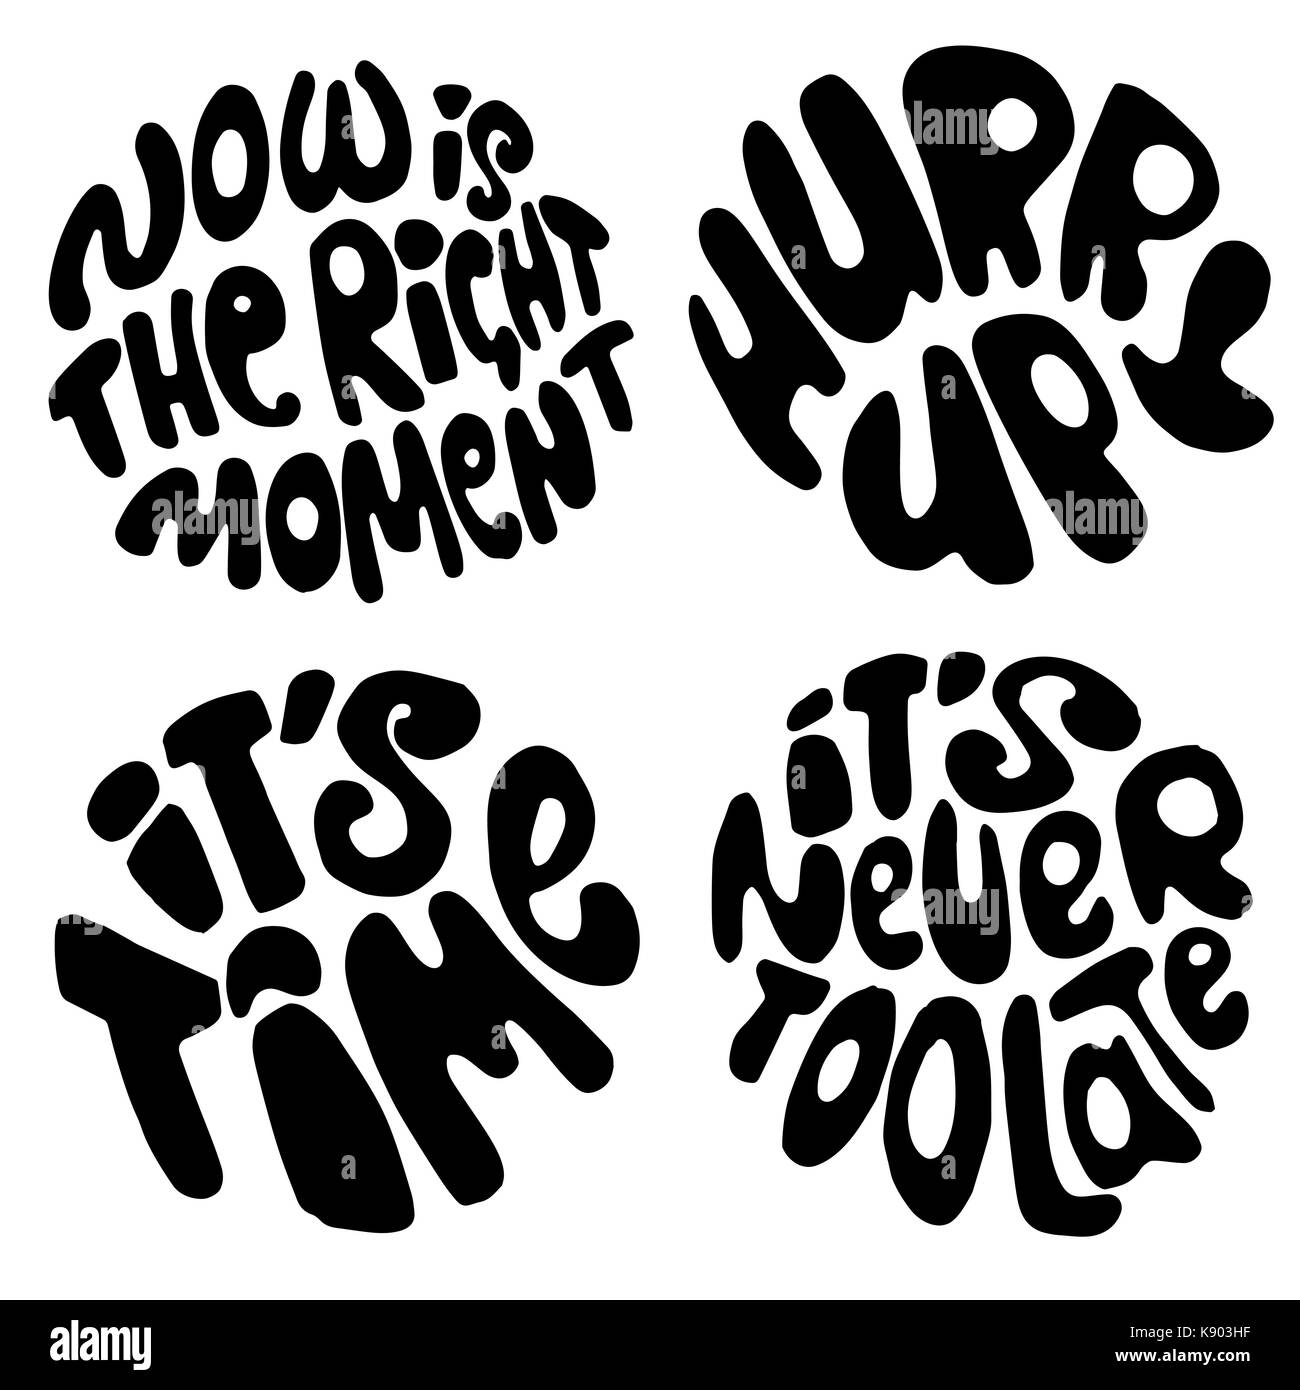 Time lettering. Motivation quotes about time and to do lists. circle lettering about Right moment and hurry up mood. - Stock Image